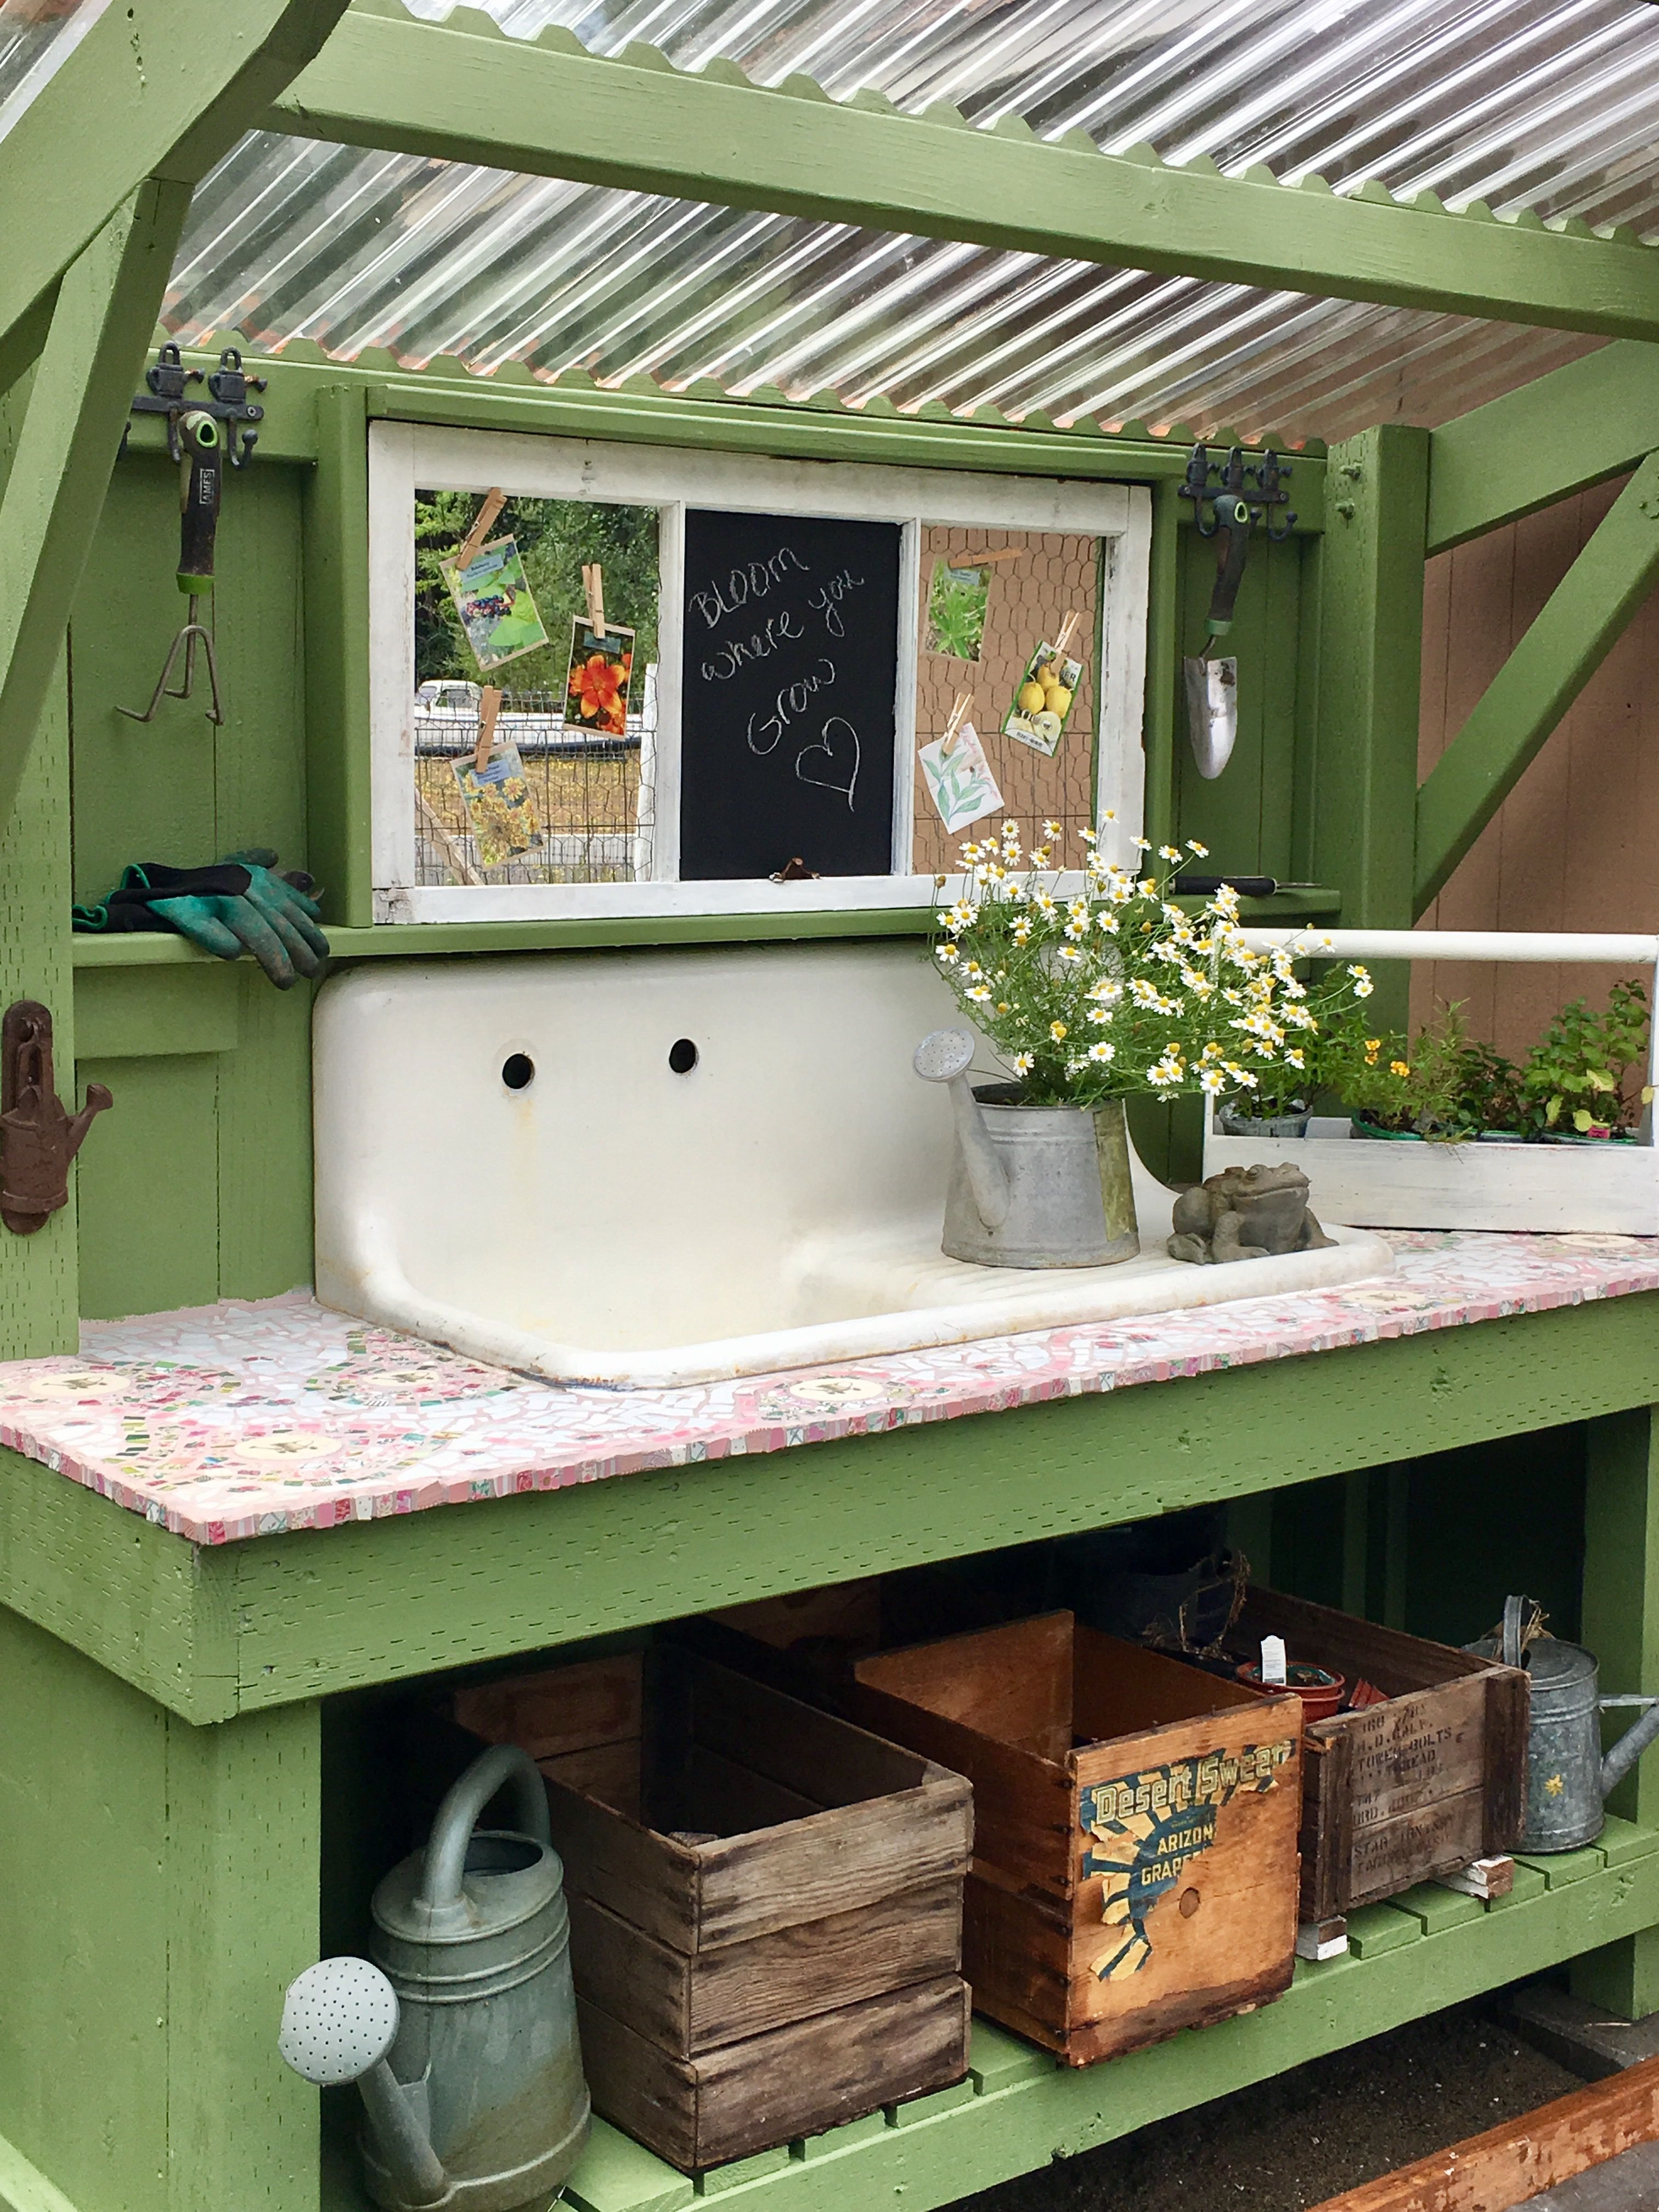 Potting Bench | Garden sink, Shed landscaping, Outdoor sinks